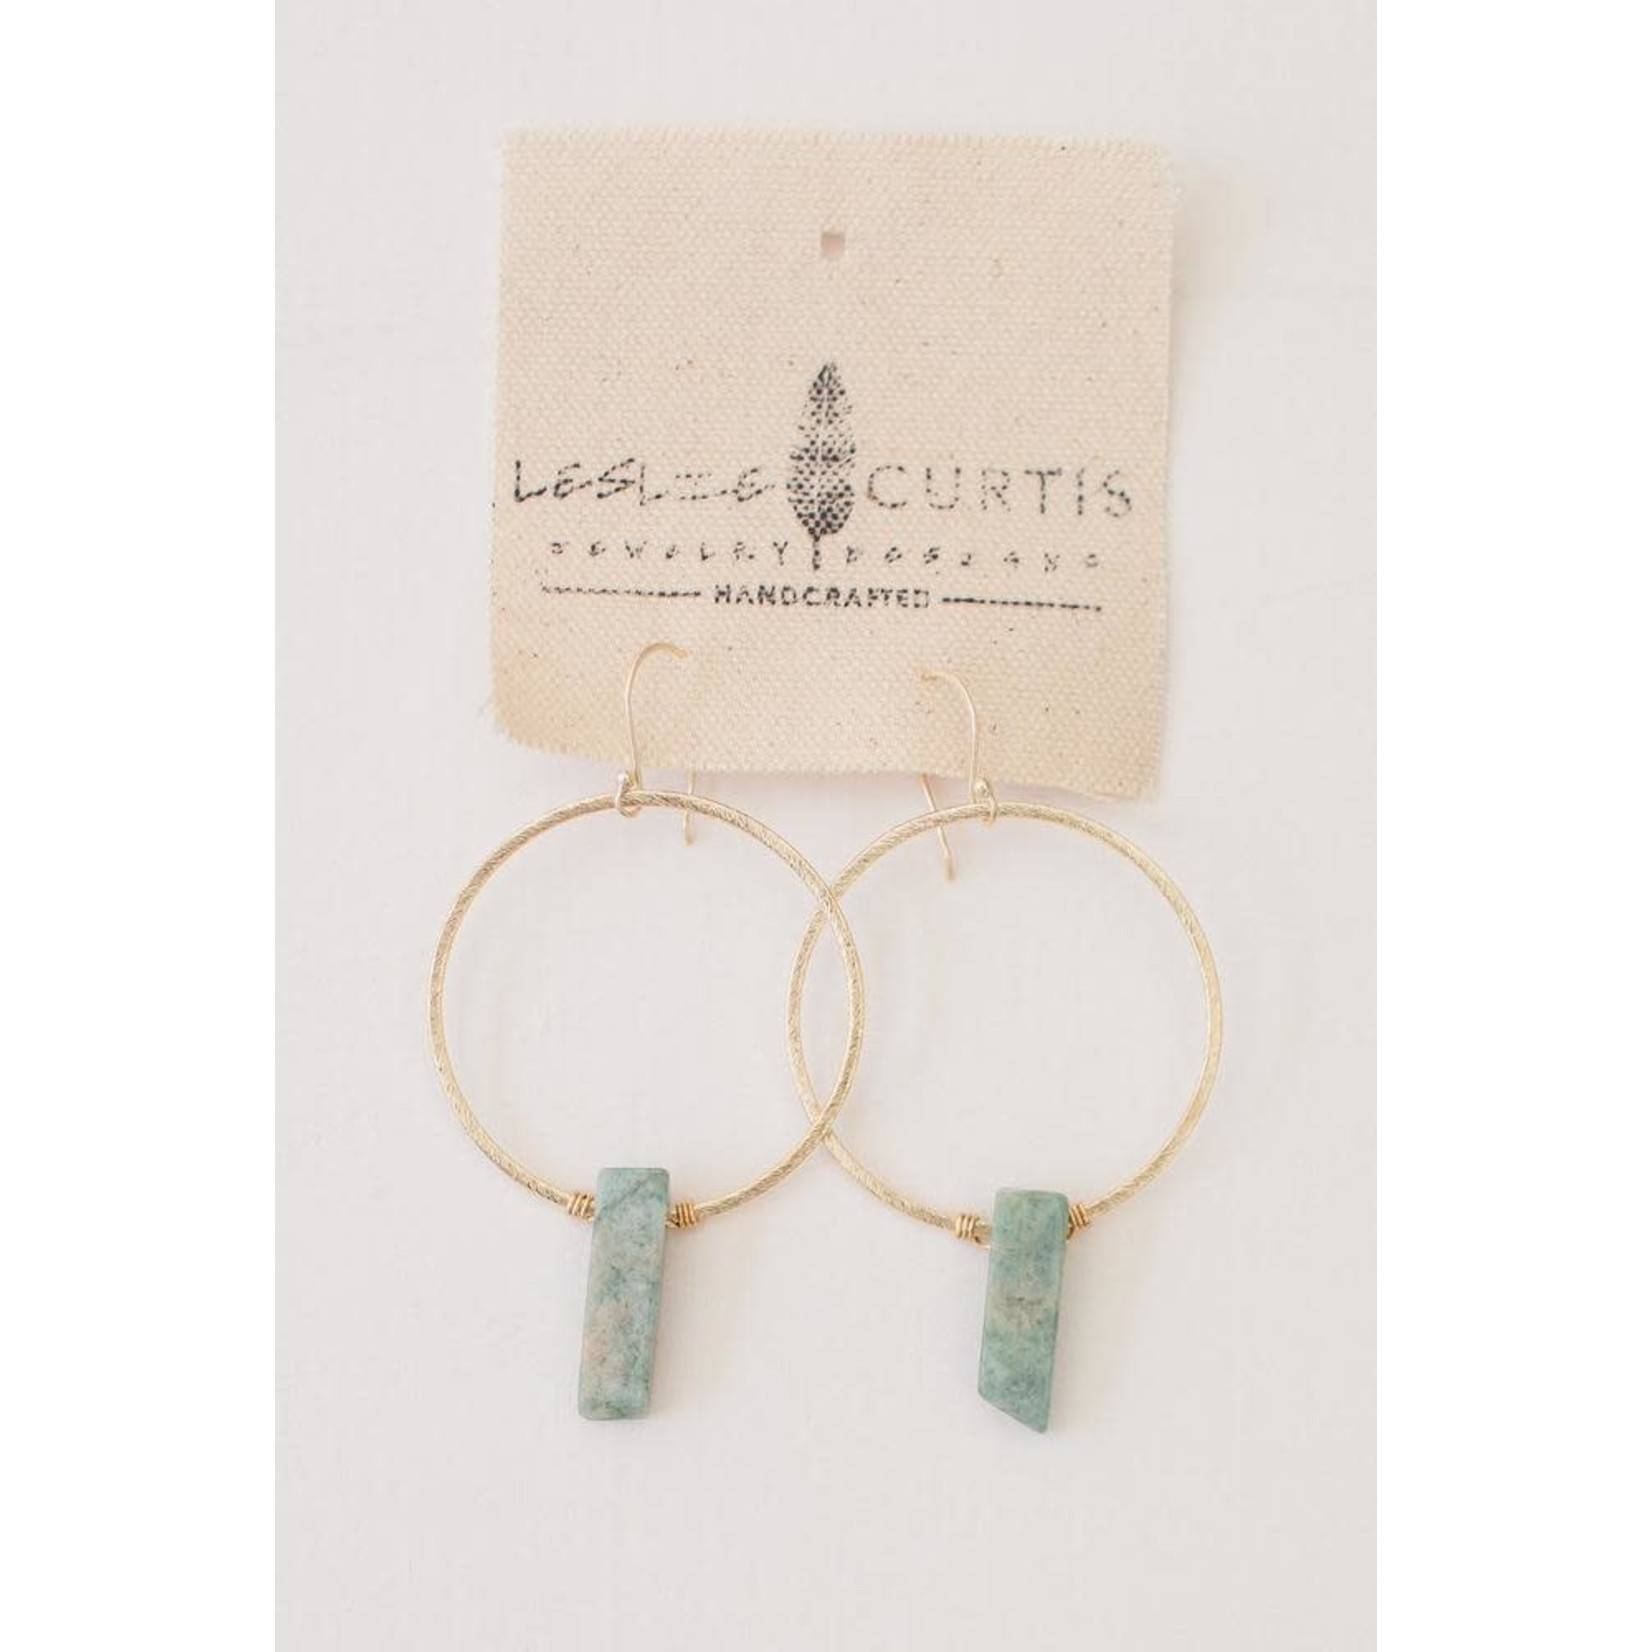 Leslie Curtis Jewelry Designs Alexandria Earrings In Gold